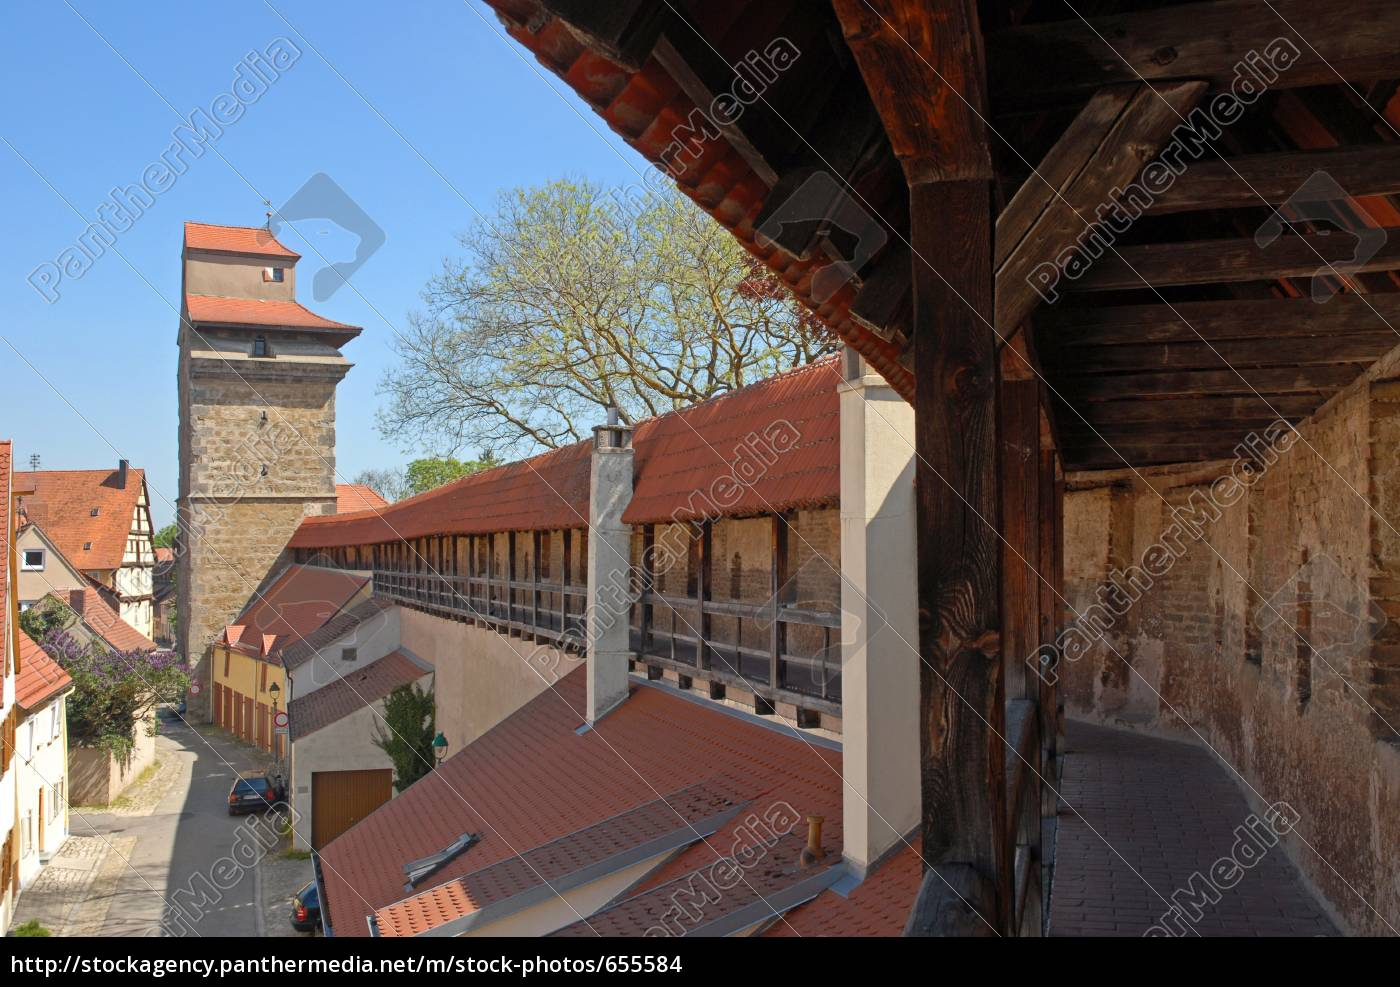 ramparts, with, reimlinger, goal - 655584